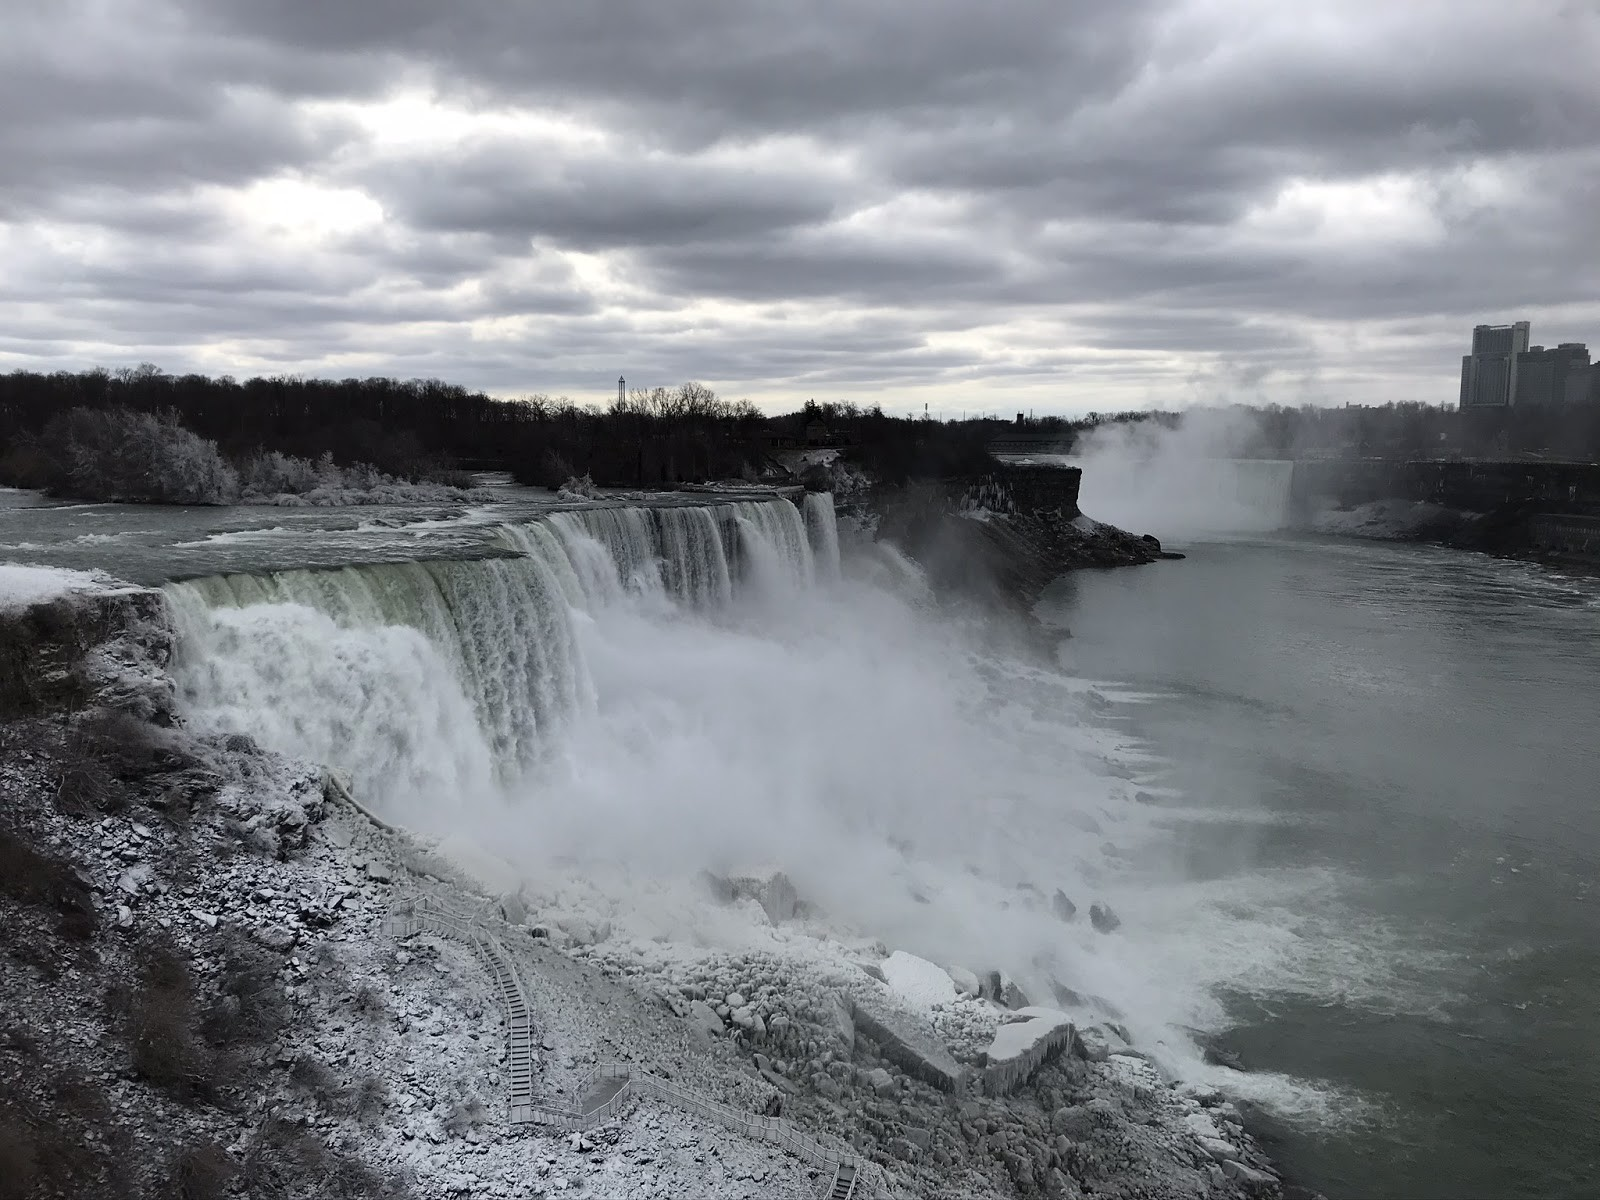 View of Niagara Falls in the winter with a cloudy sky from the Niagara Falls Observation Tower.